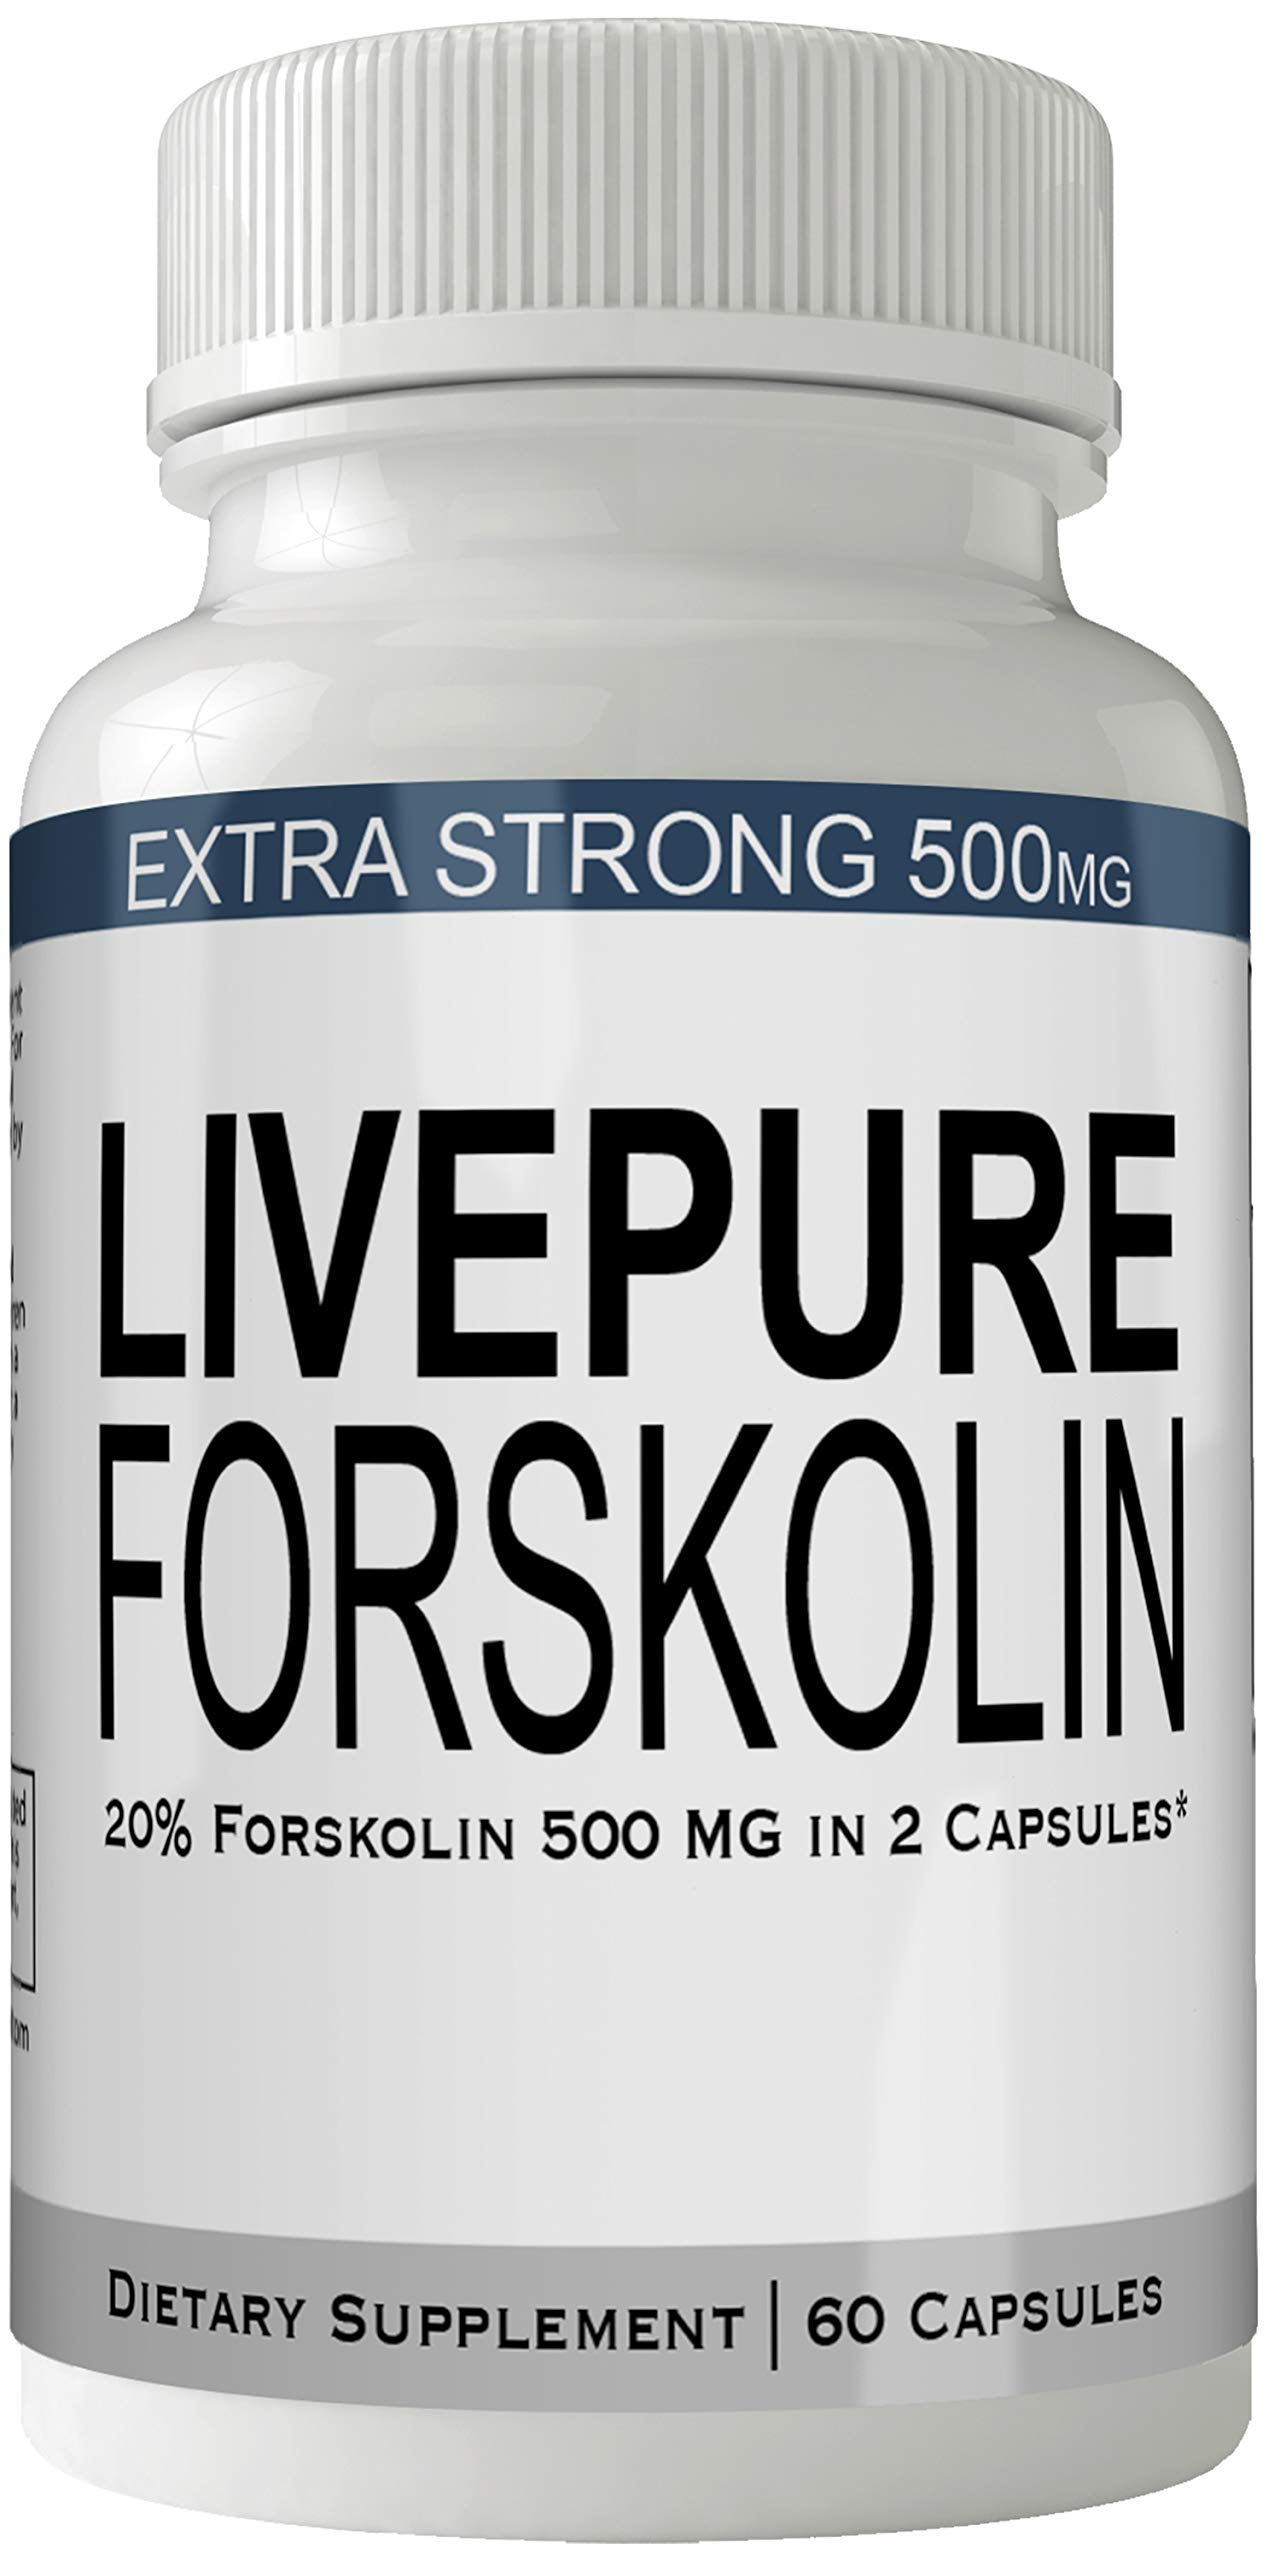 Live Pure Forskolin Weight Loss Supplement Livepure Pills with Ultra Formula with 250mg High Quality Natural Forskolii Extract Appetite Suppressant Tablets Boost Metabolism